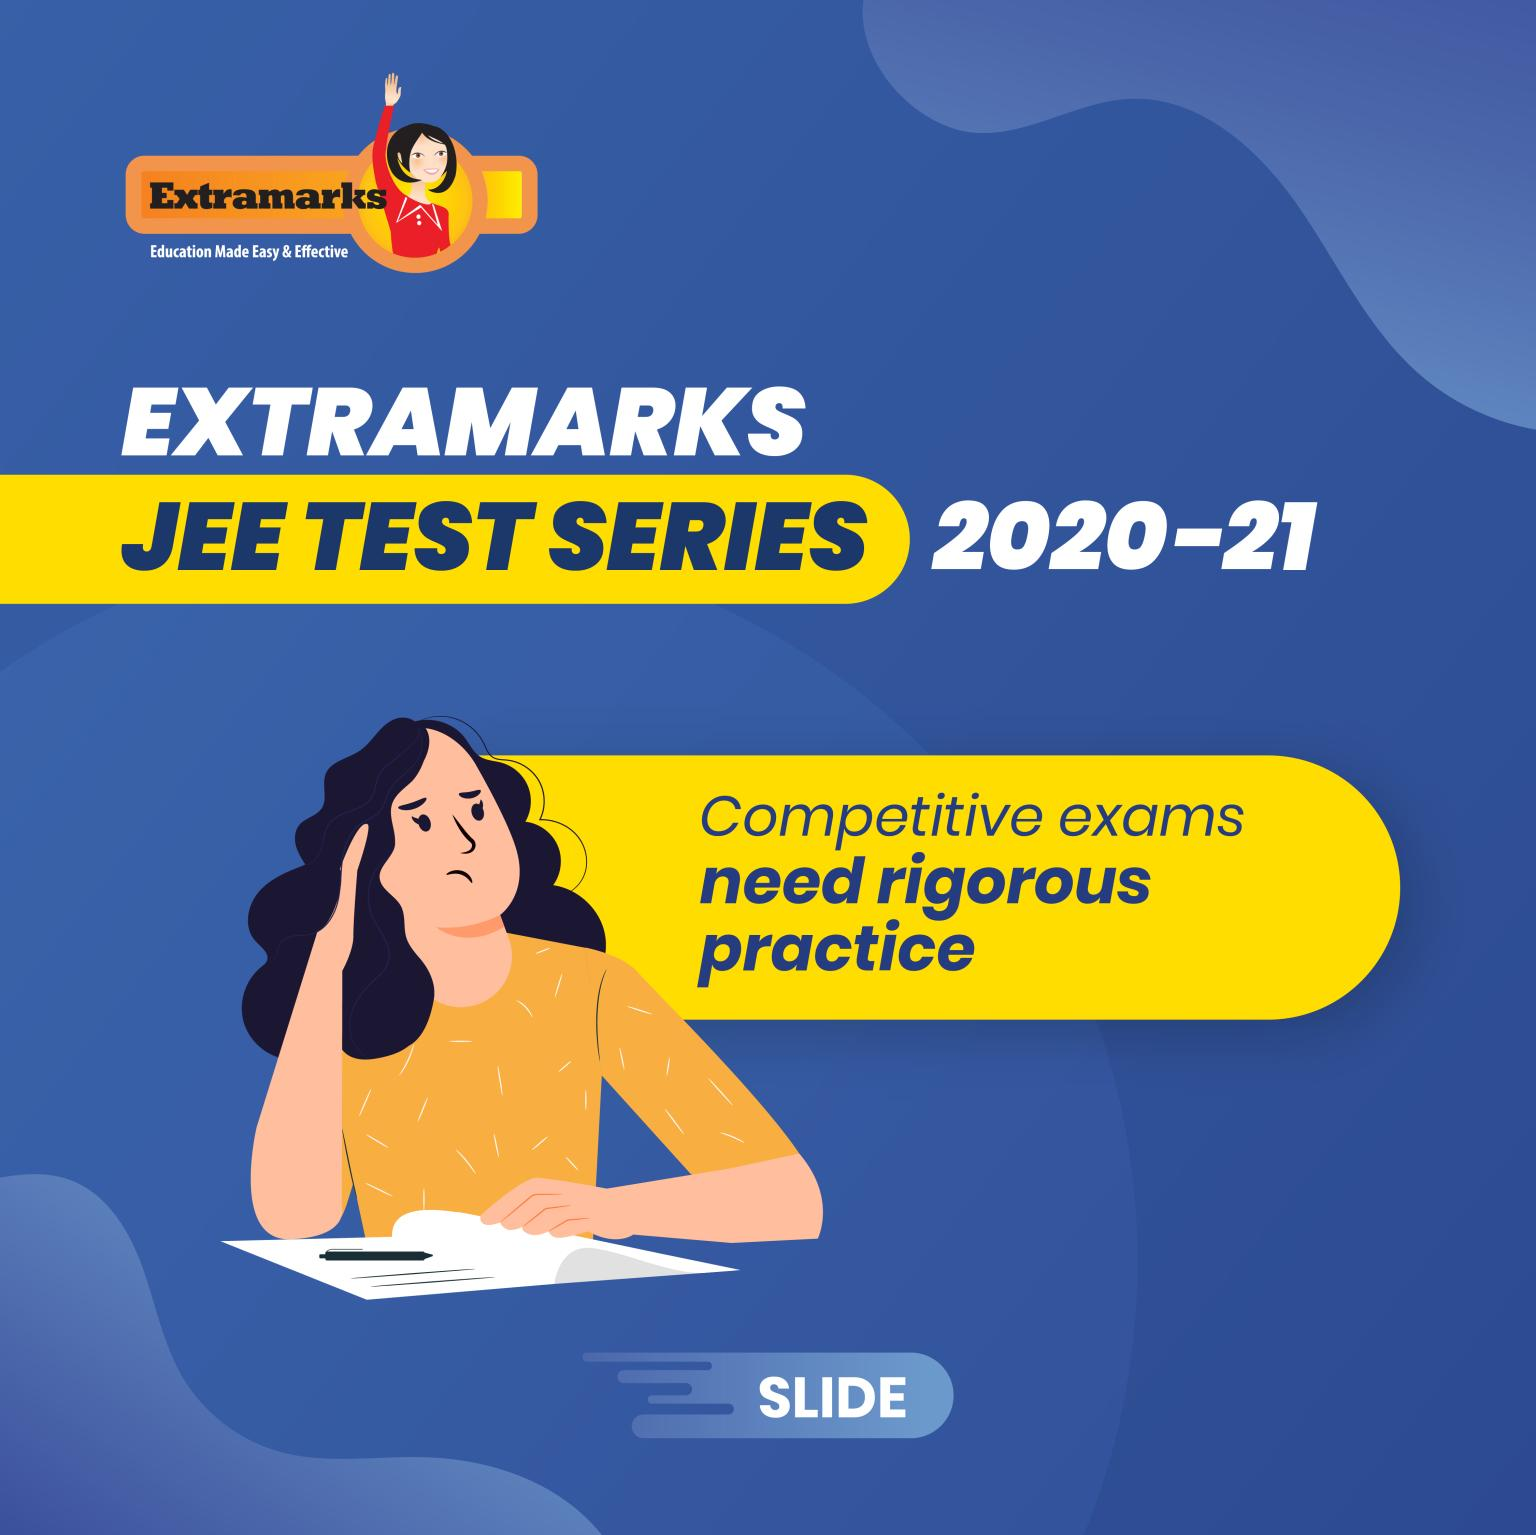 Through the Test Series, you can learn new concepts, practice your lessons and resolve your doubts with direct guidance from experienced teachers.